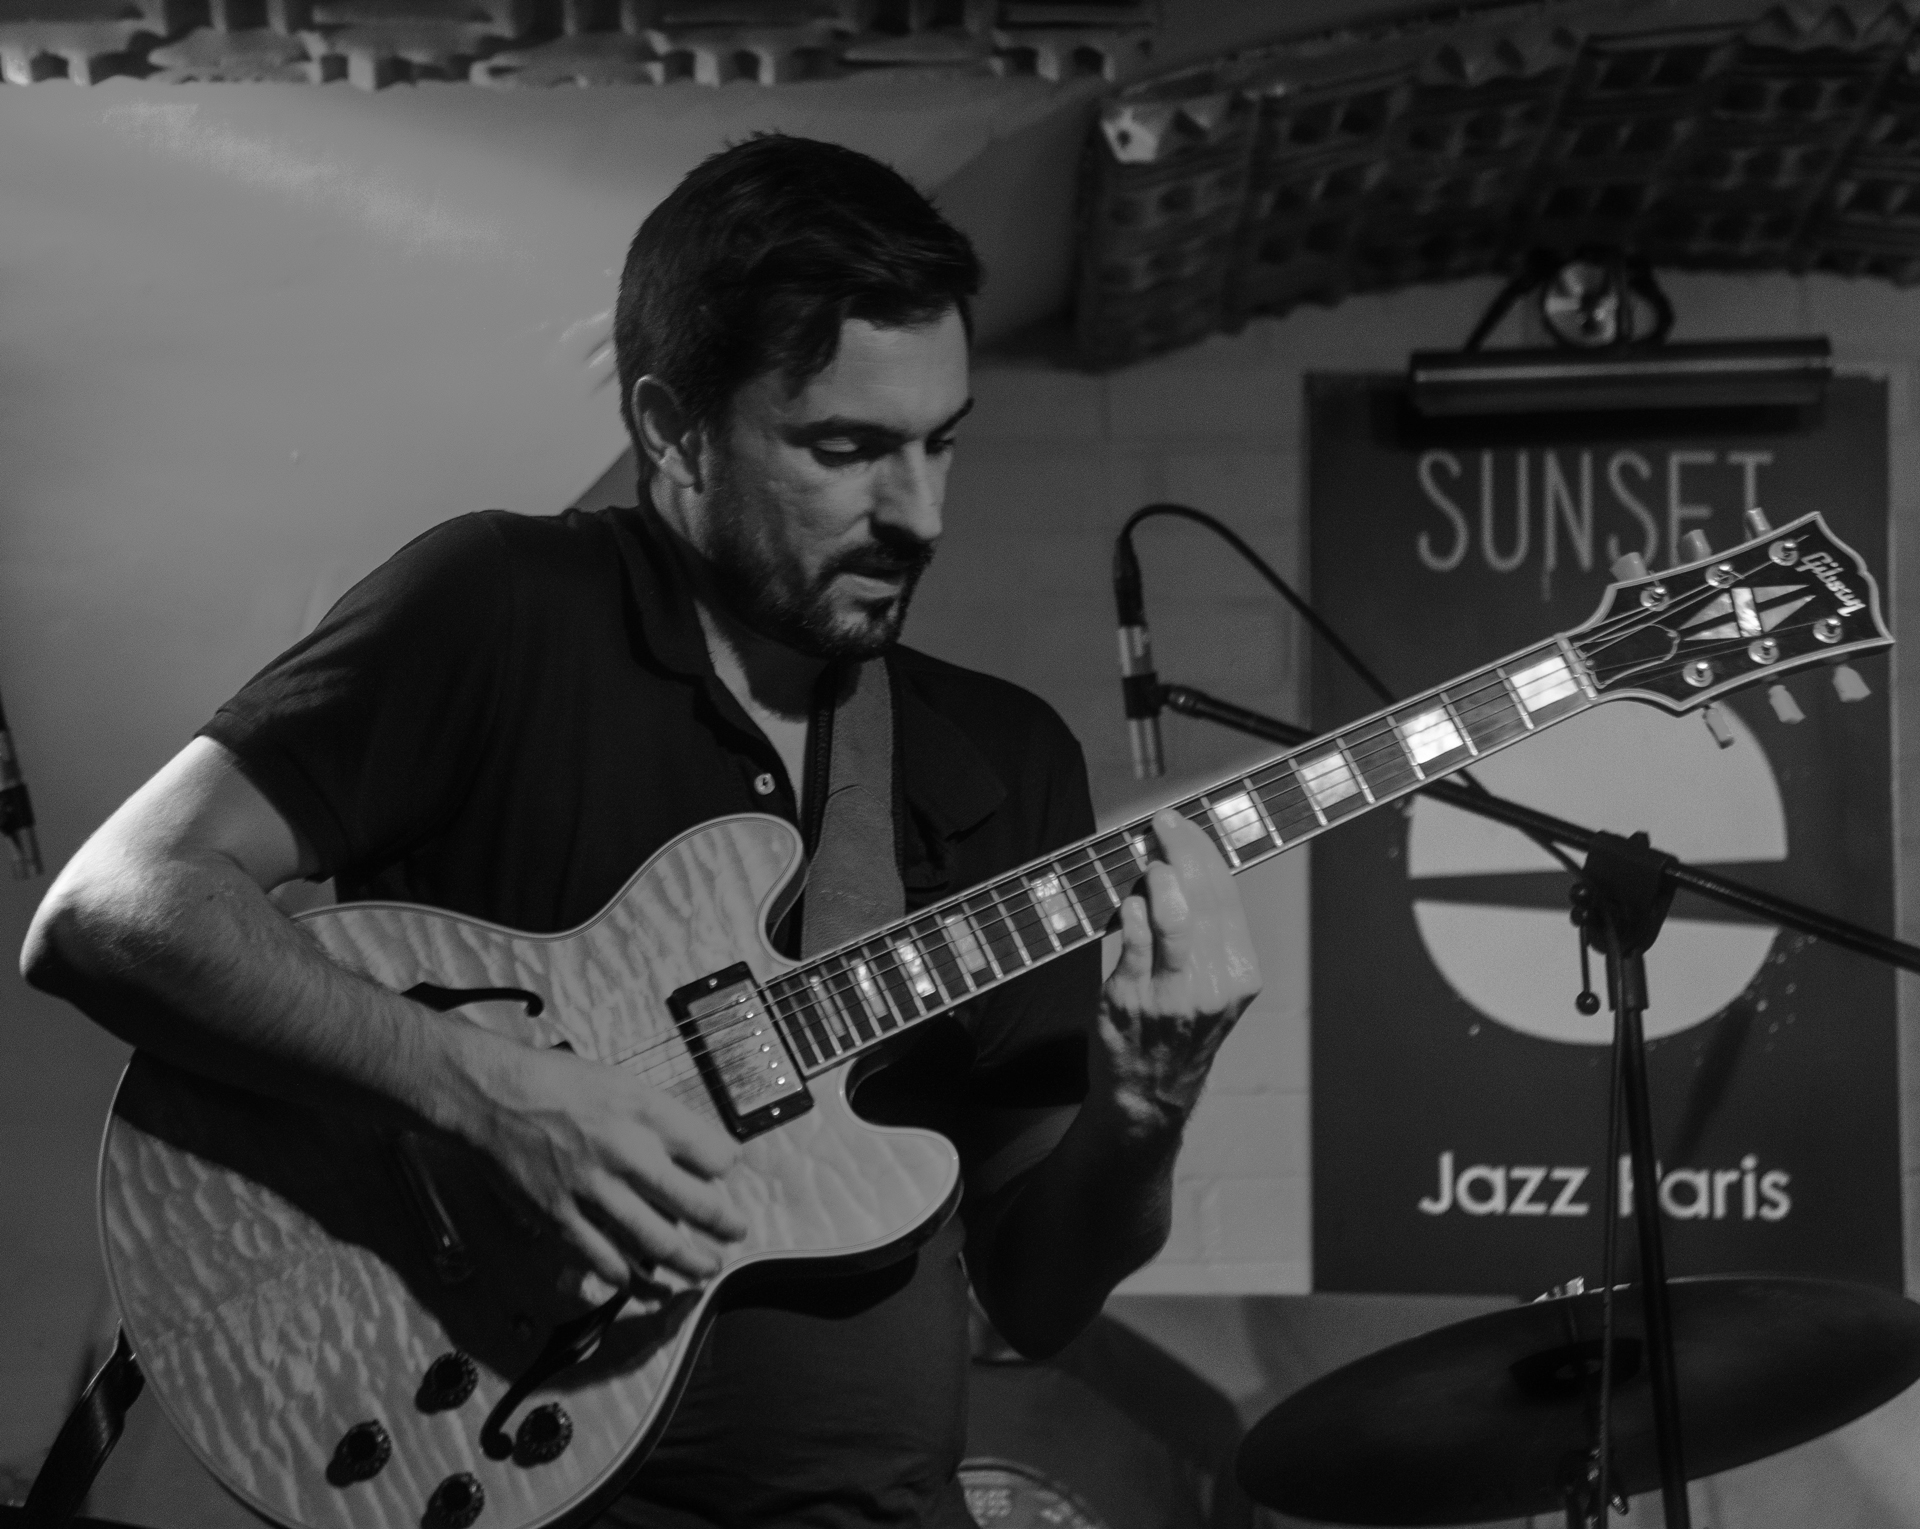 Jazz Rock Progressif - 4dB - Damien Boureau, guitariste fusion - concert Sunset